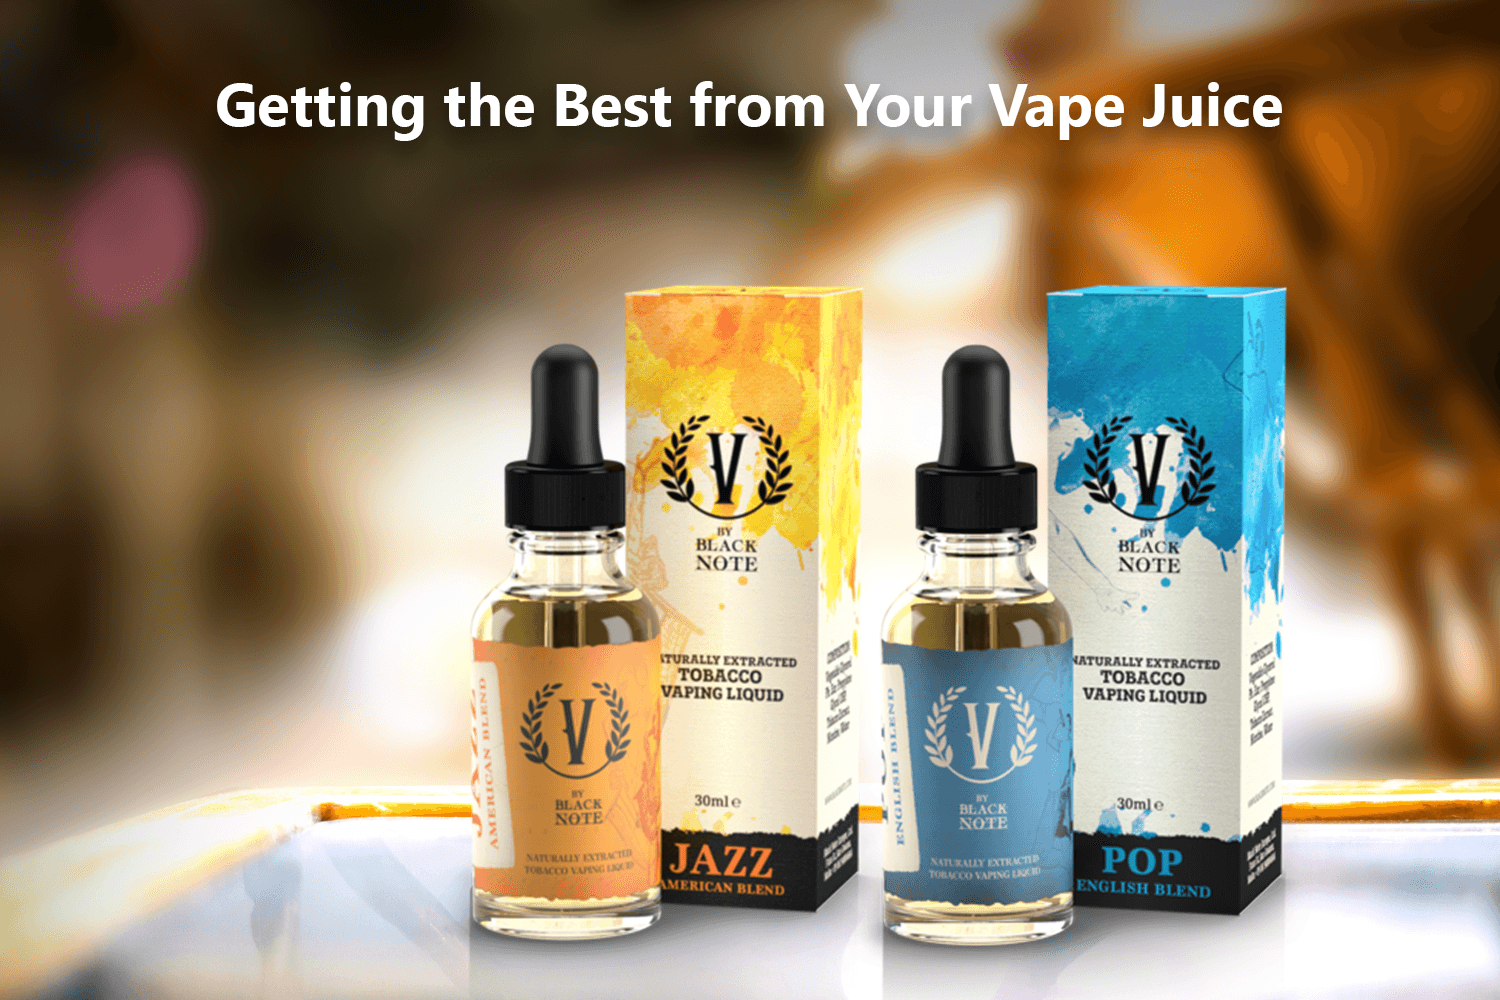 Getting the Best from Your Vape Juice